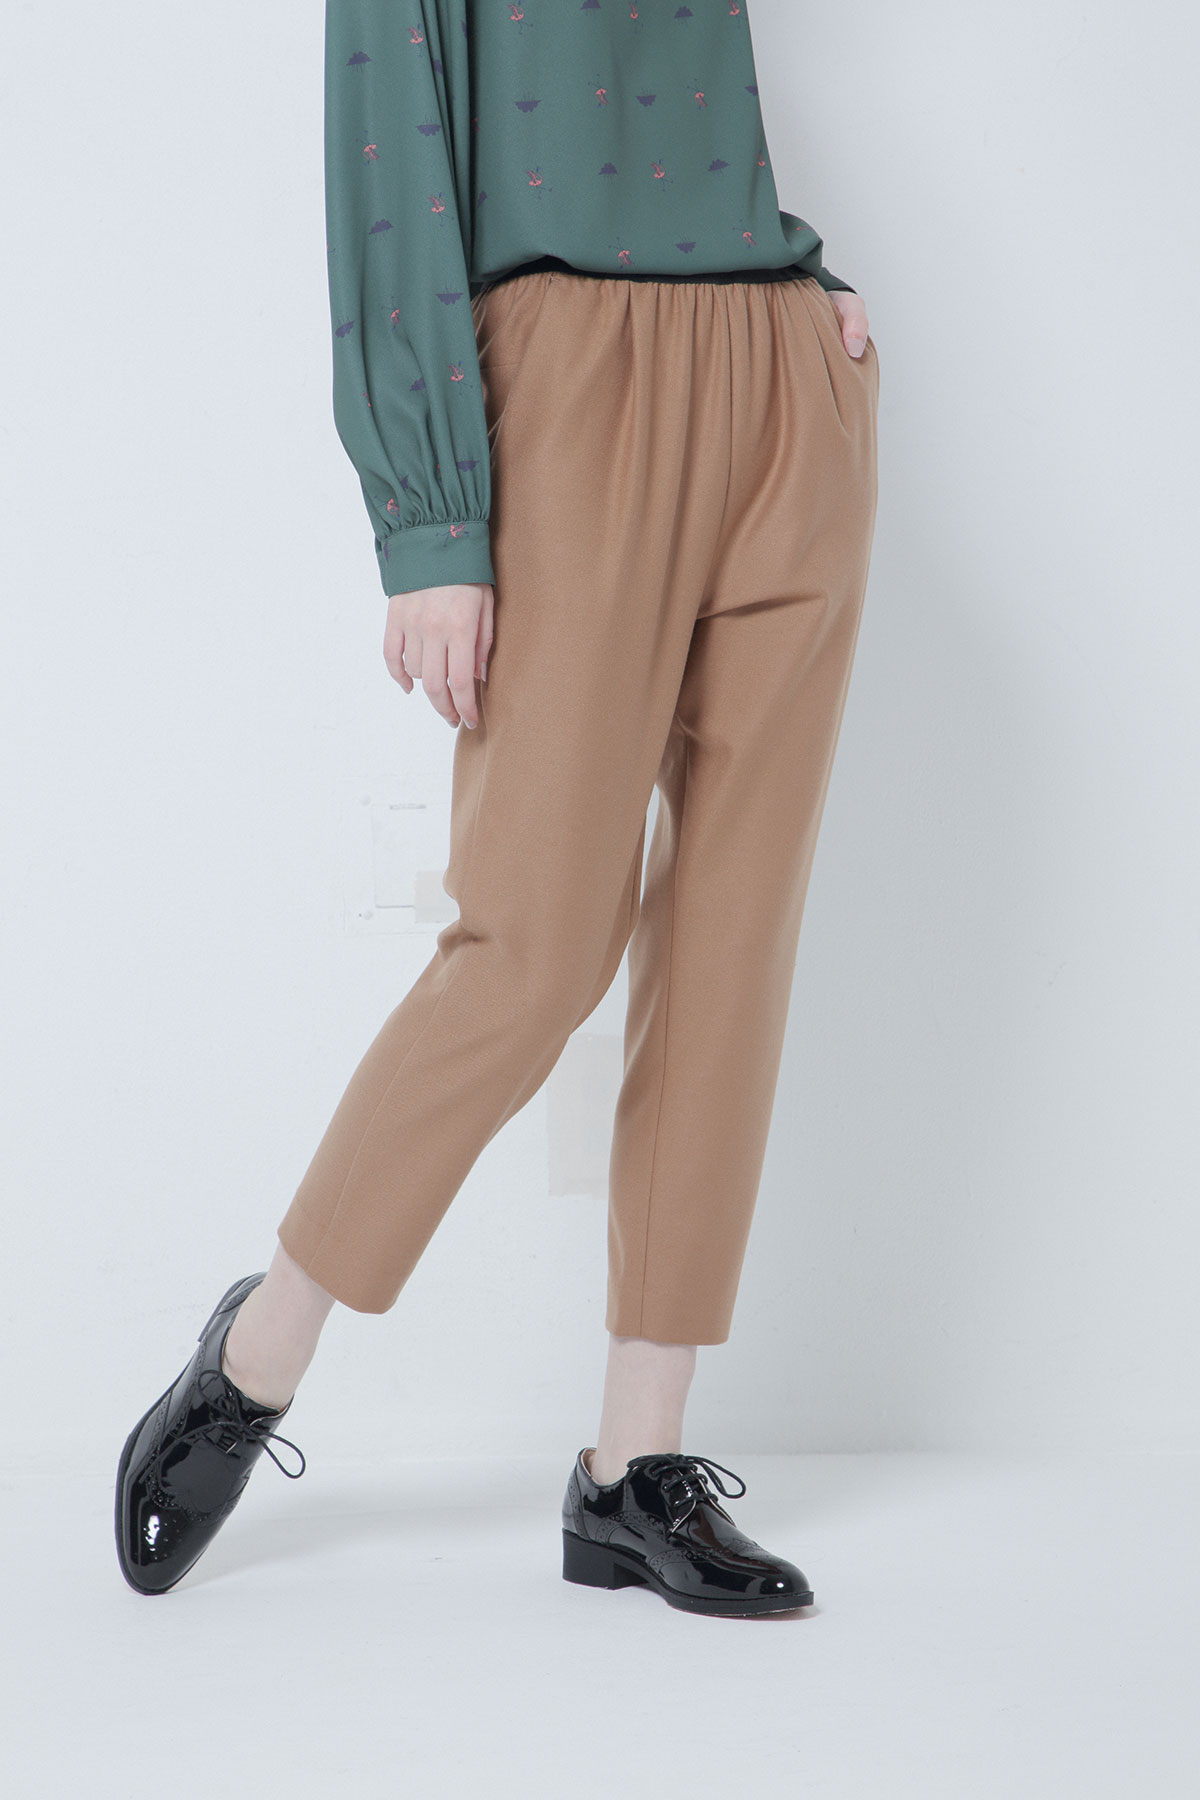 BO205316-camel Thermos Fabiric Confortable Amphora Trousers -CAMEL-【BO205316】Del.Oct.